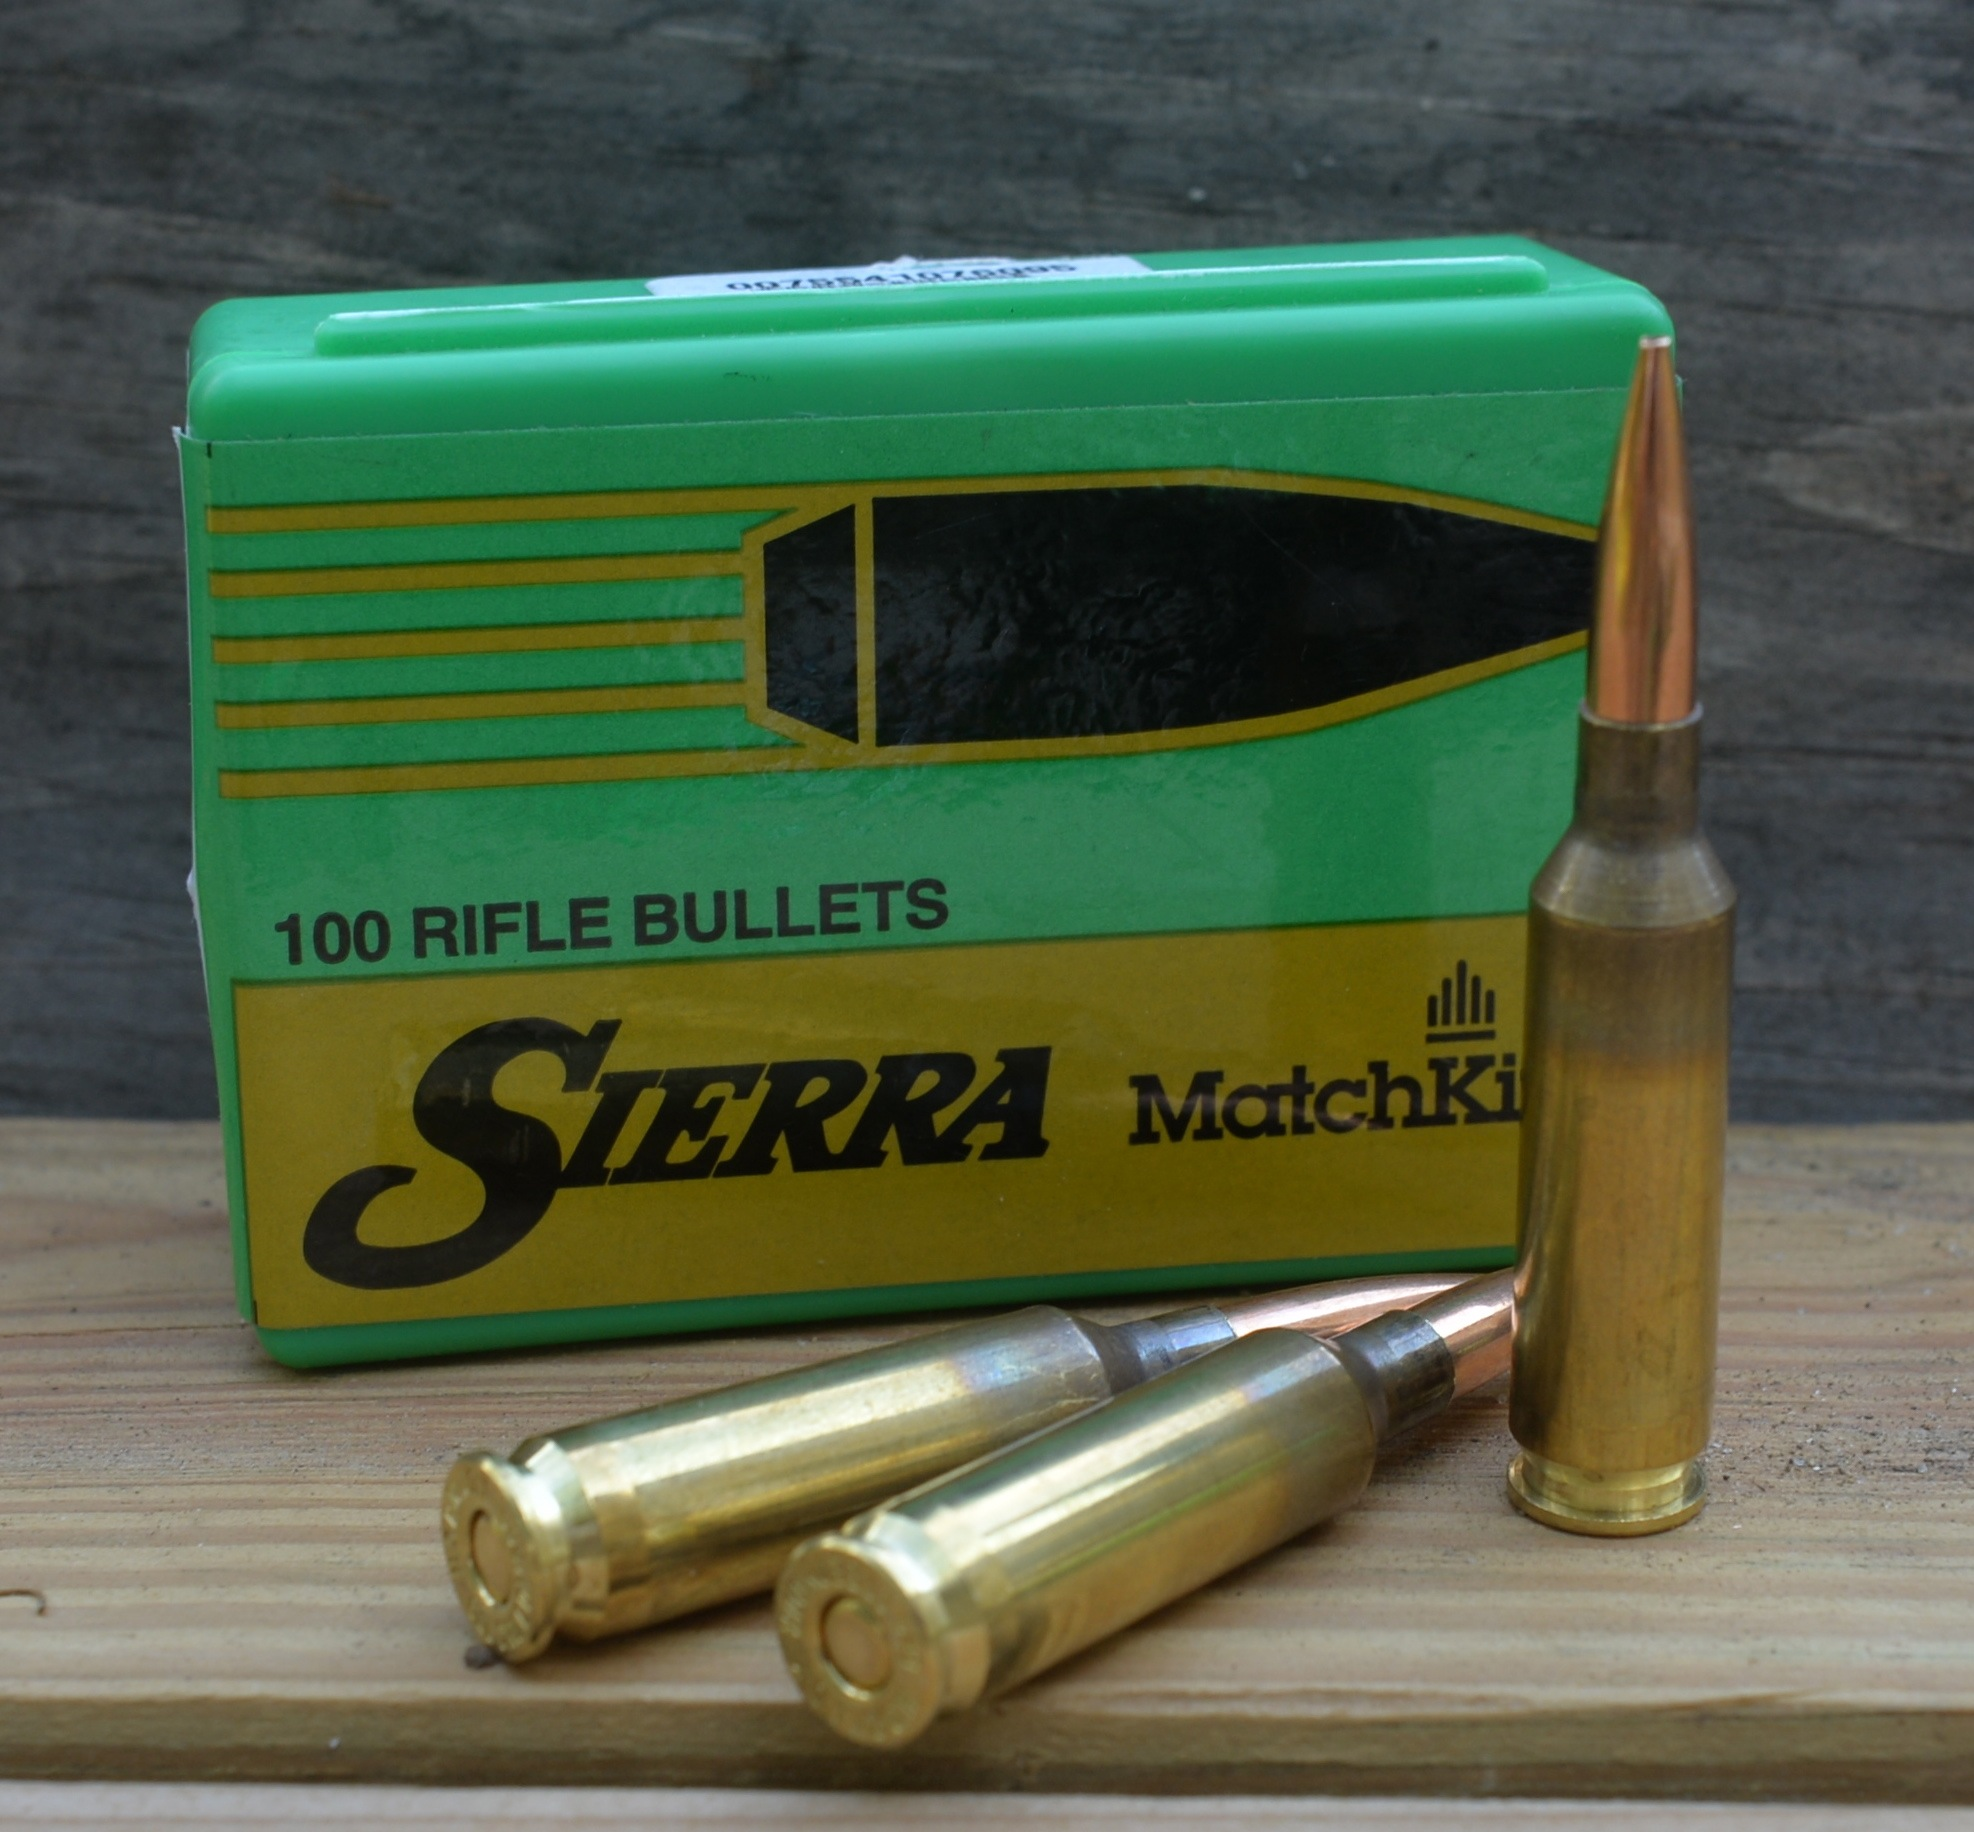 6 creed 107 smk bullets with box